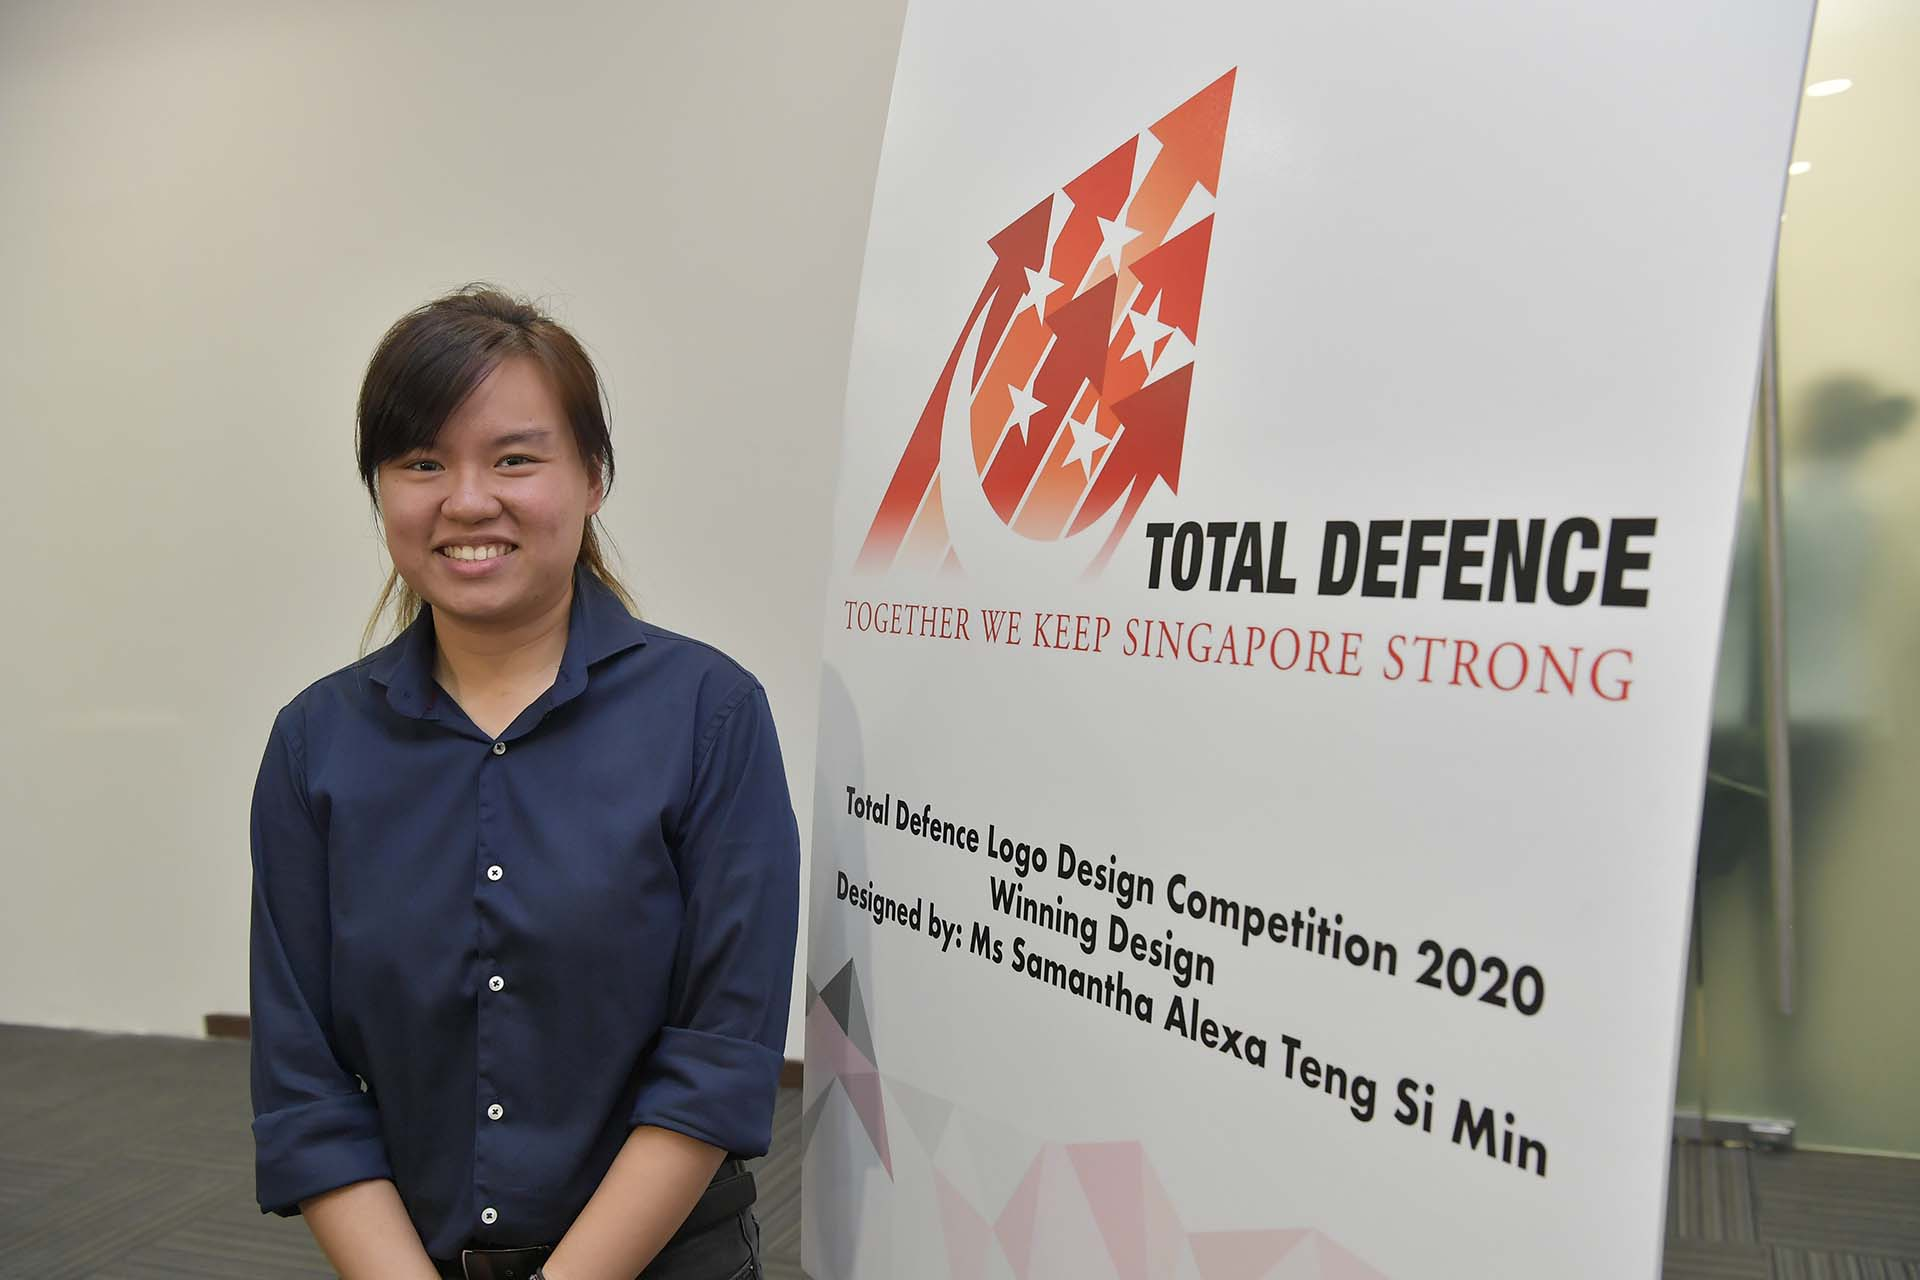 S'pore unveils new Total Defence logo